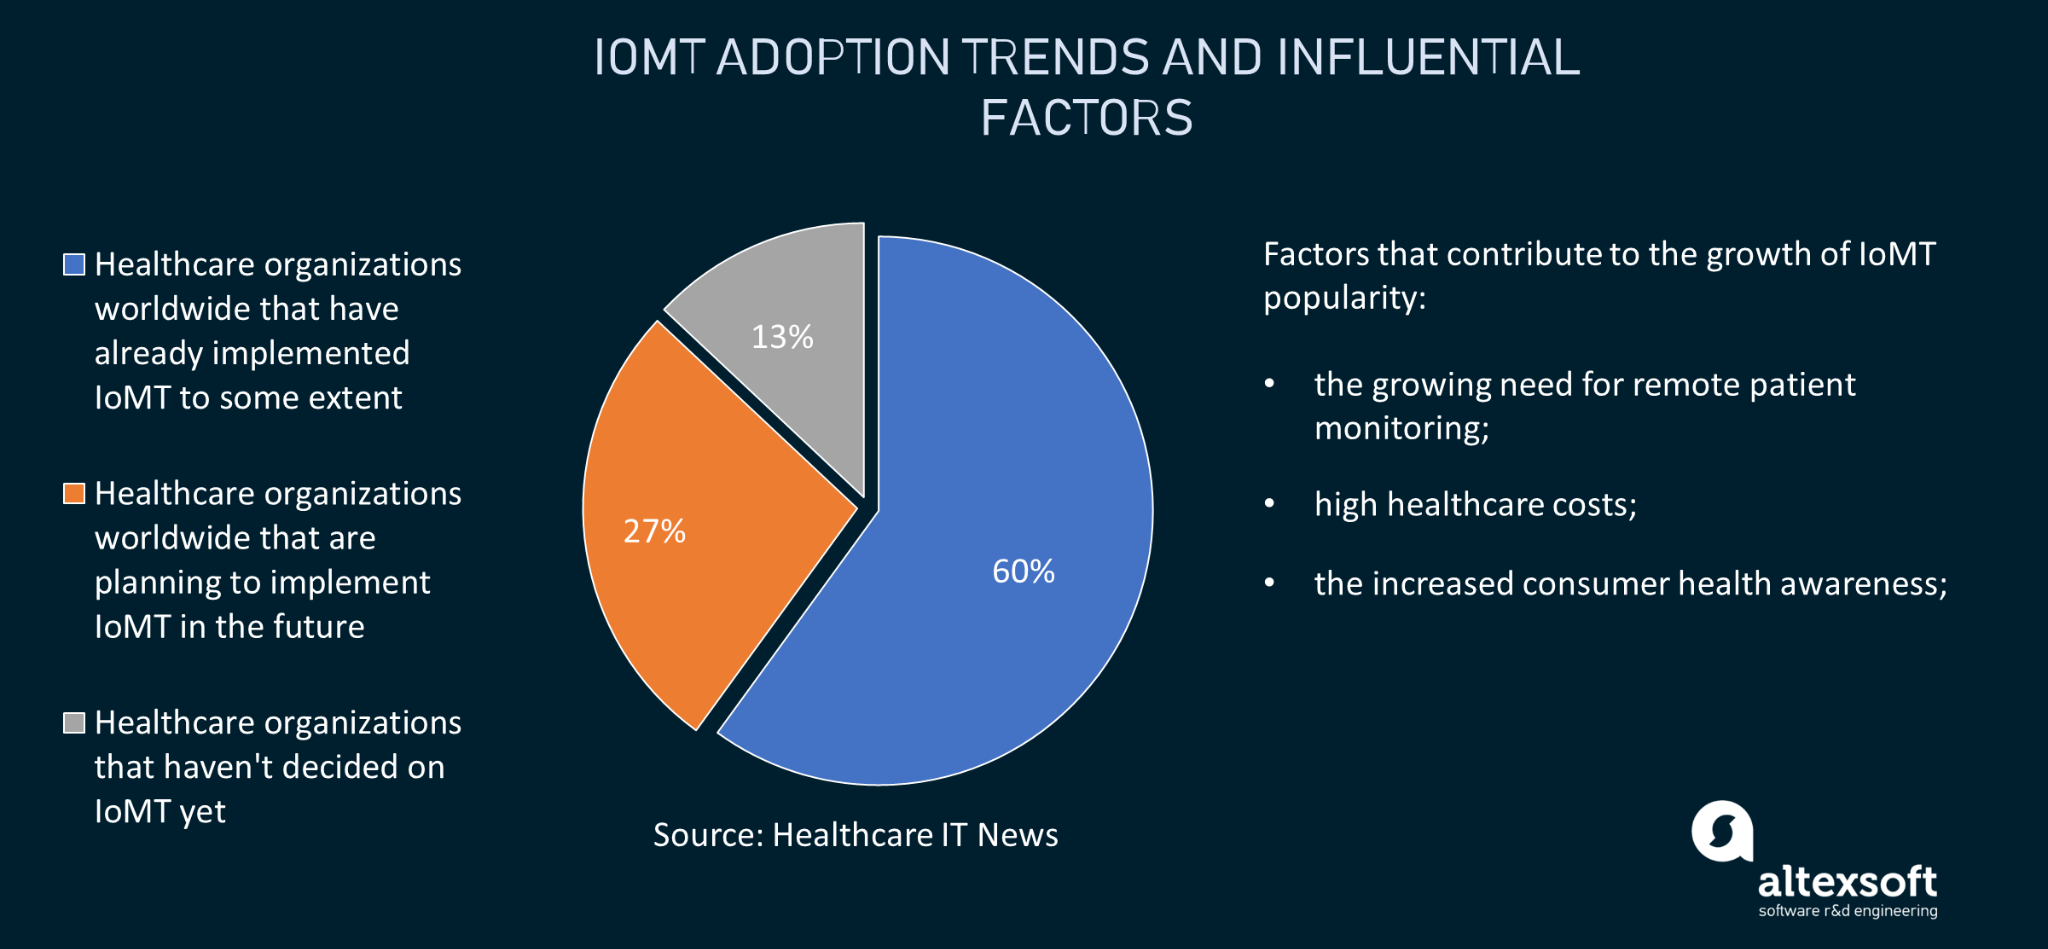 IoMT adoption trends and factors behind its popularity